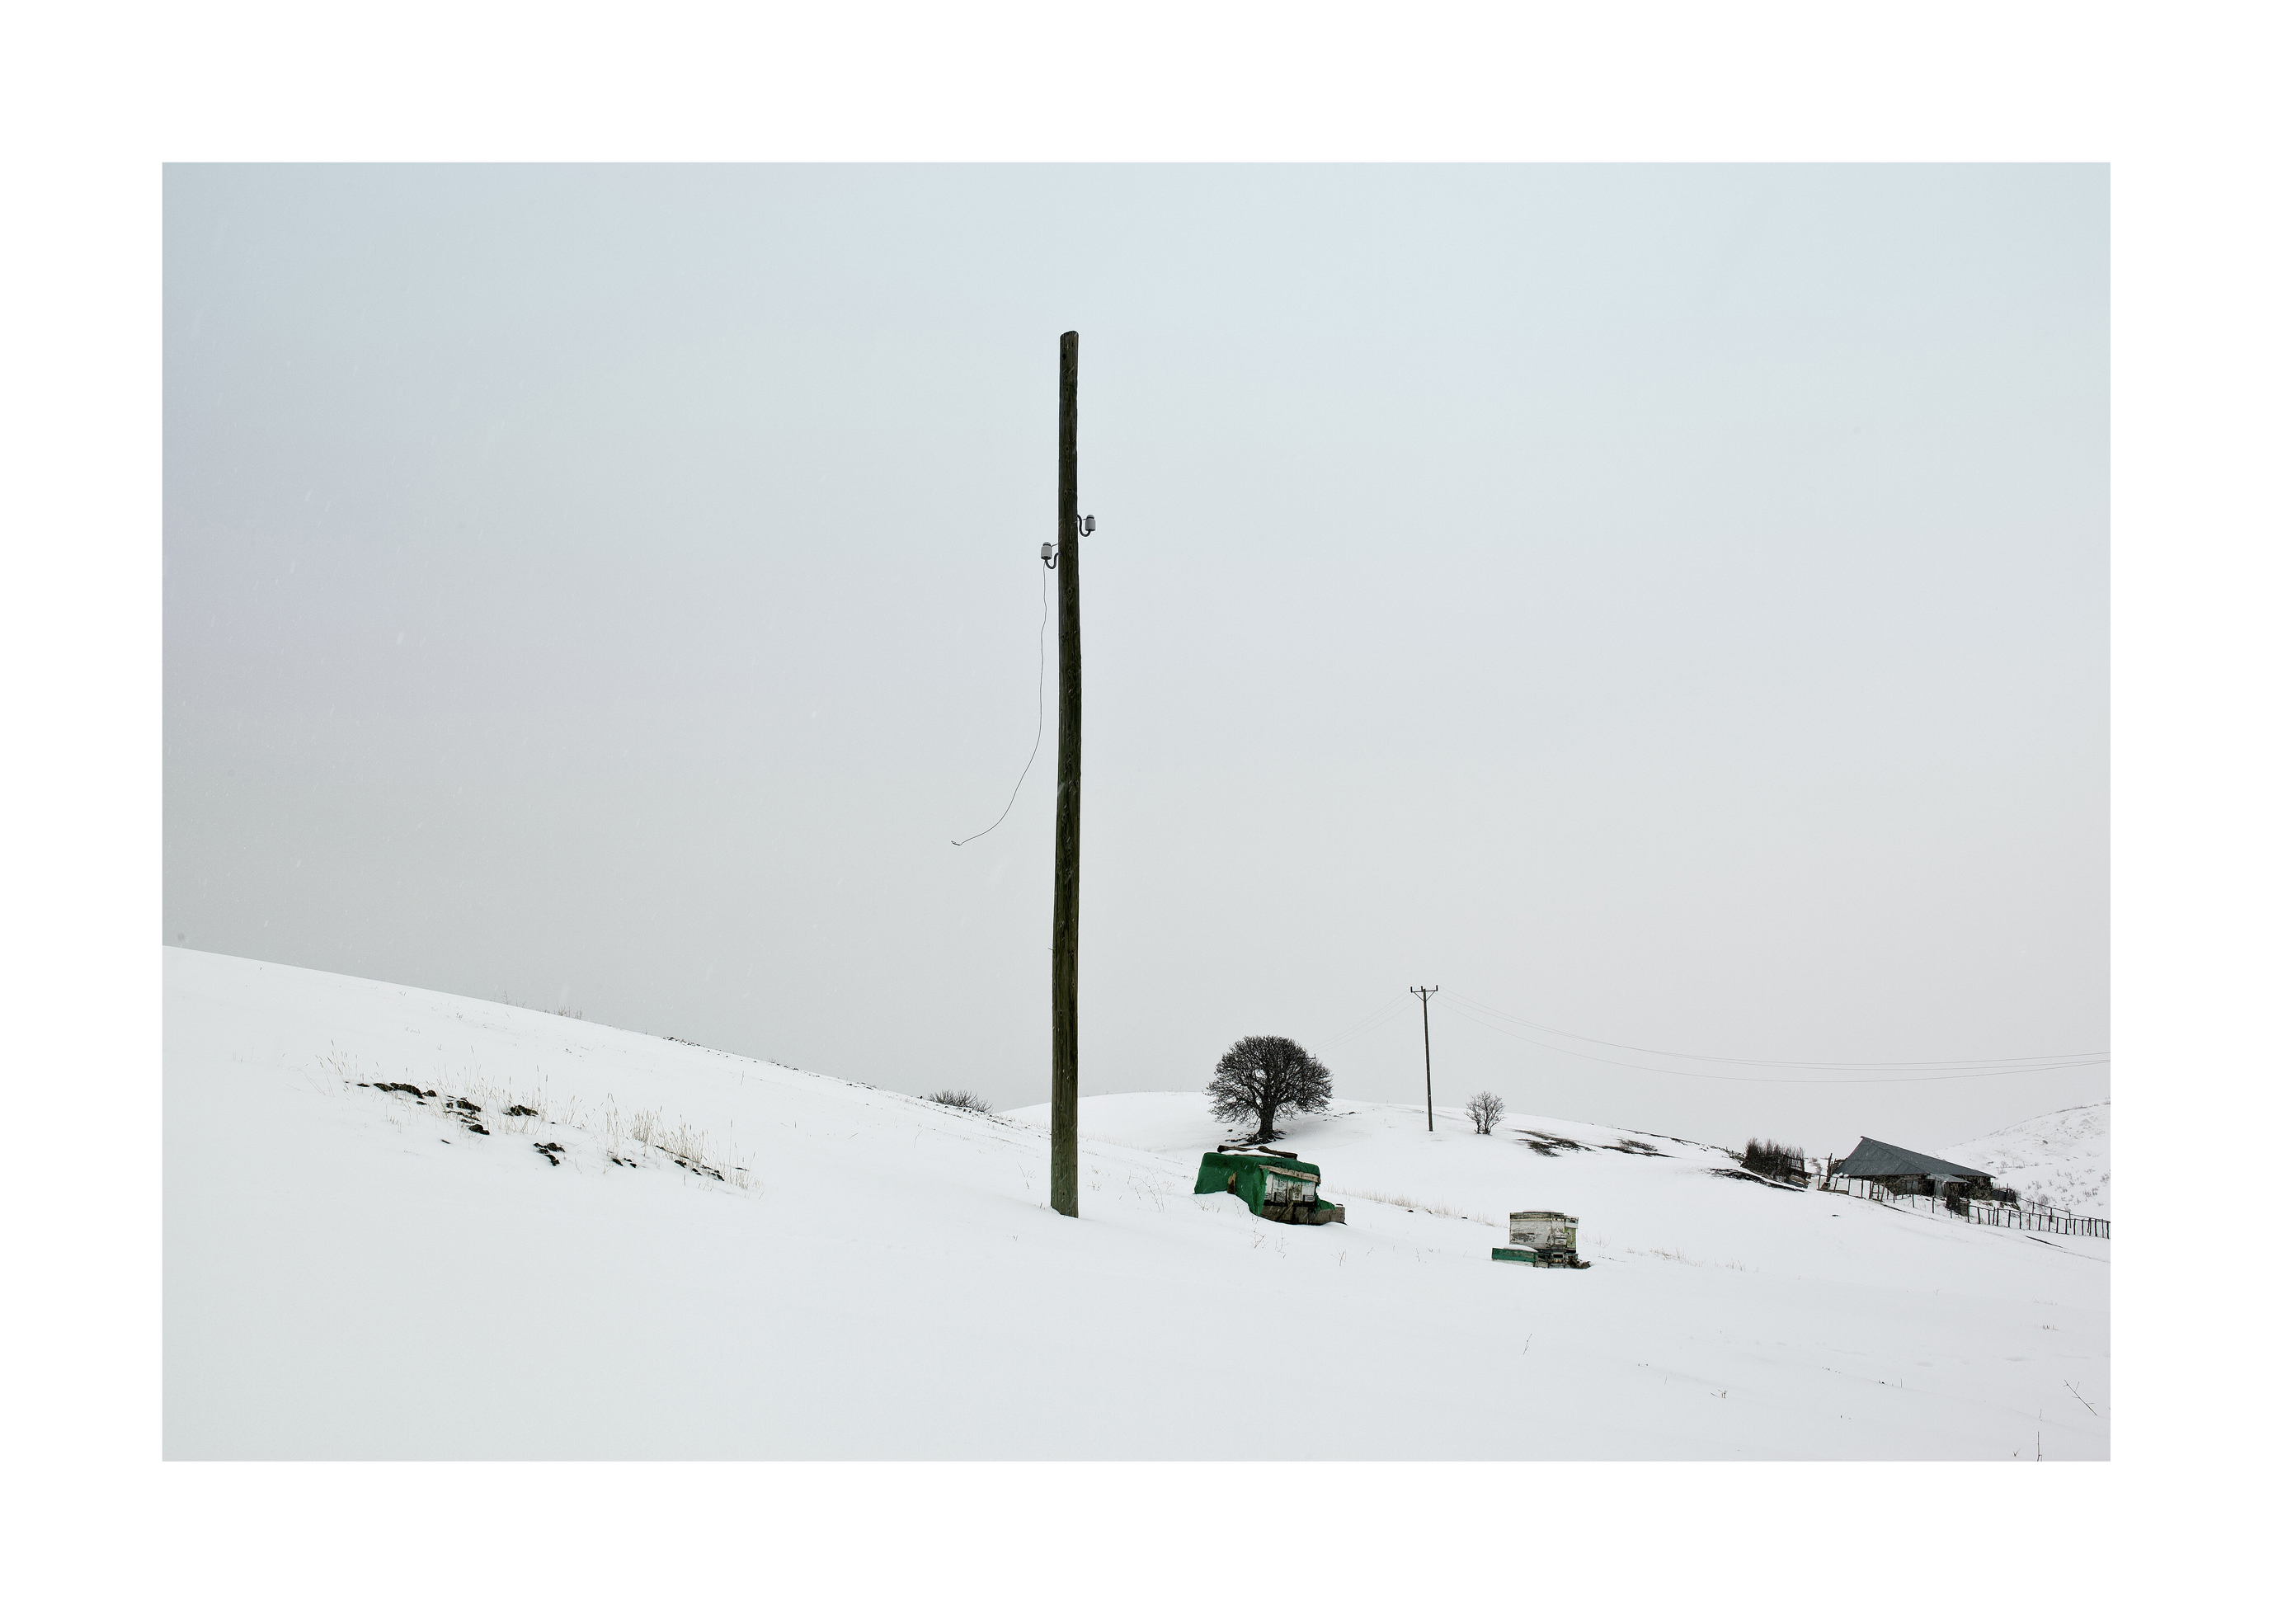 POLE THAT IS TO SAY SCULPTURE-1, from the series Open Phone Booth, 2011 C-print, 52 x 72 cm (framed)